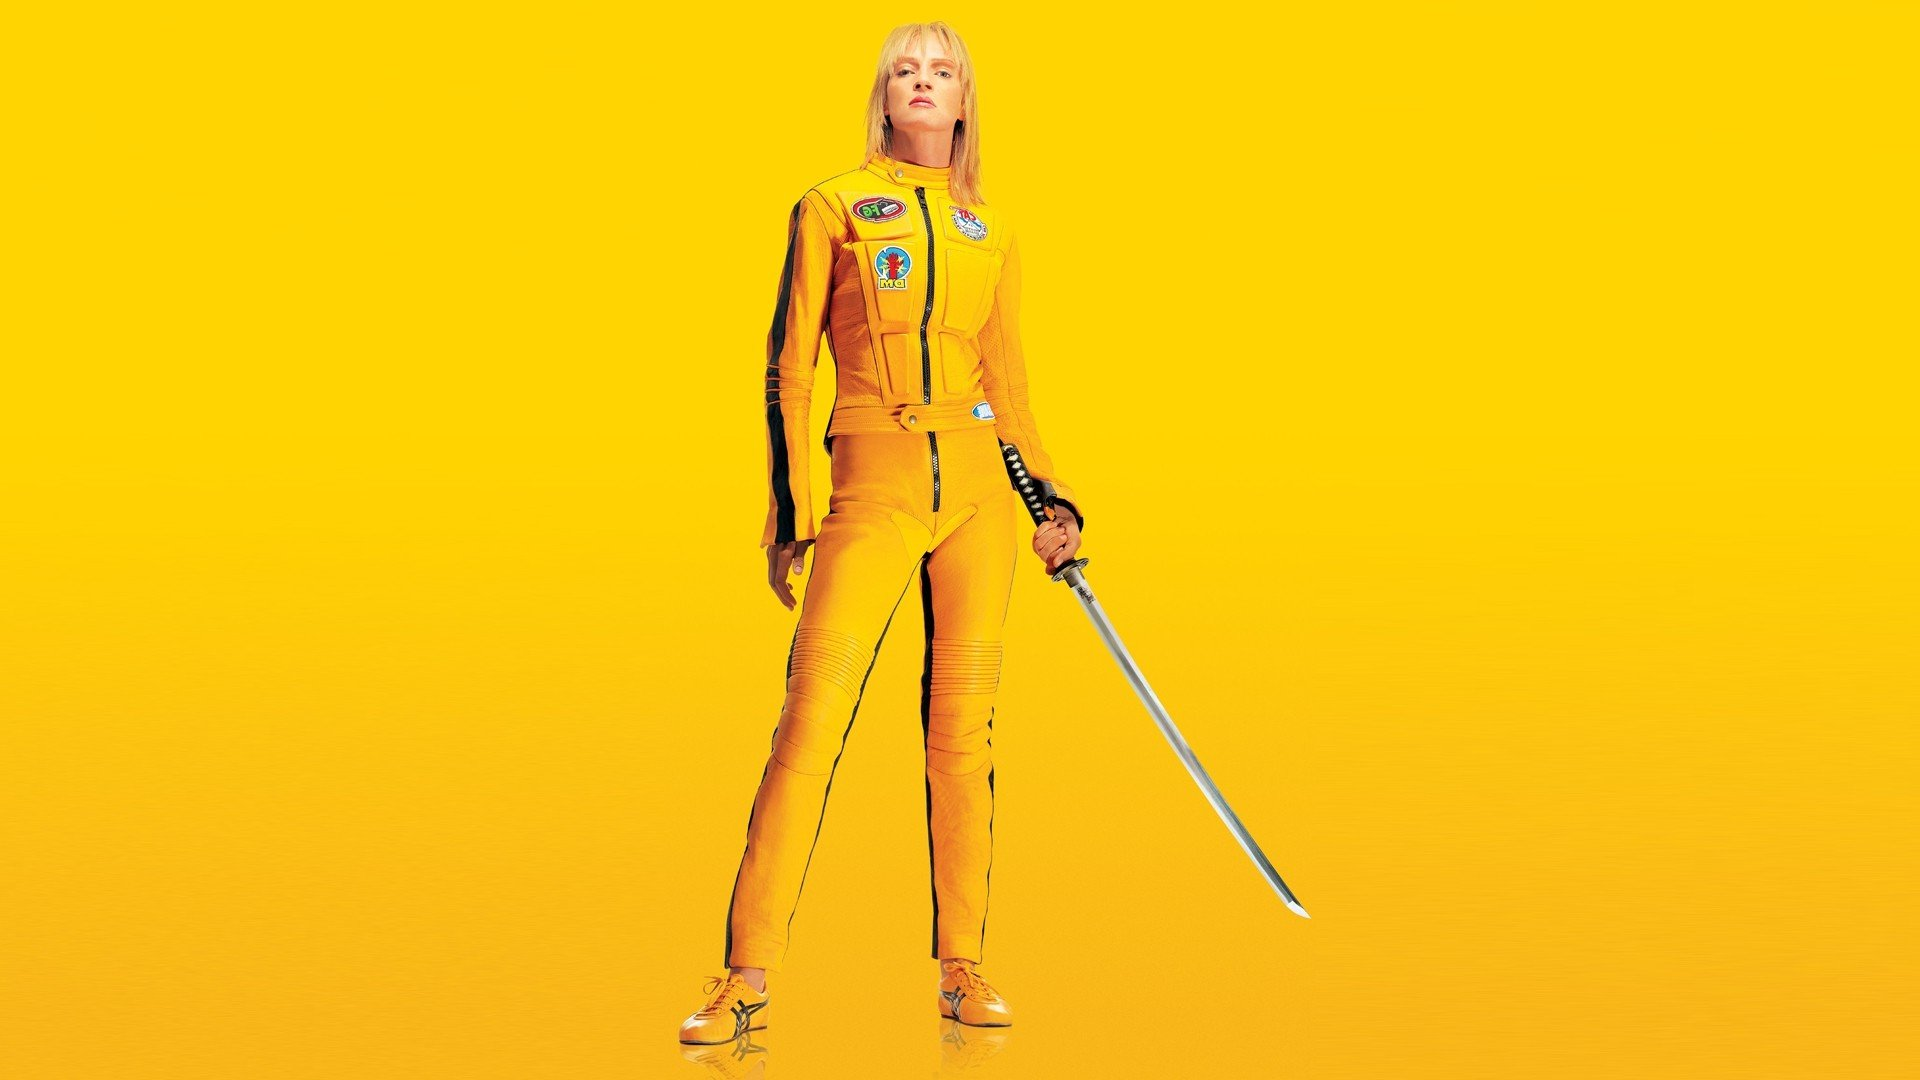 download movie killbill wallpaper - photo #3